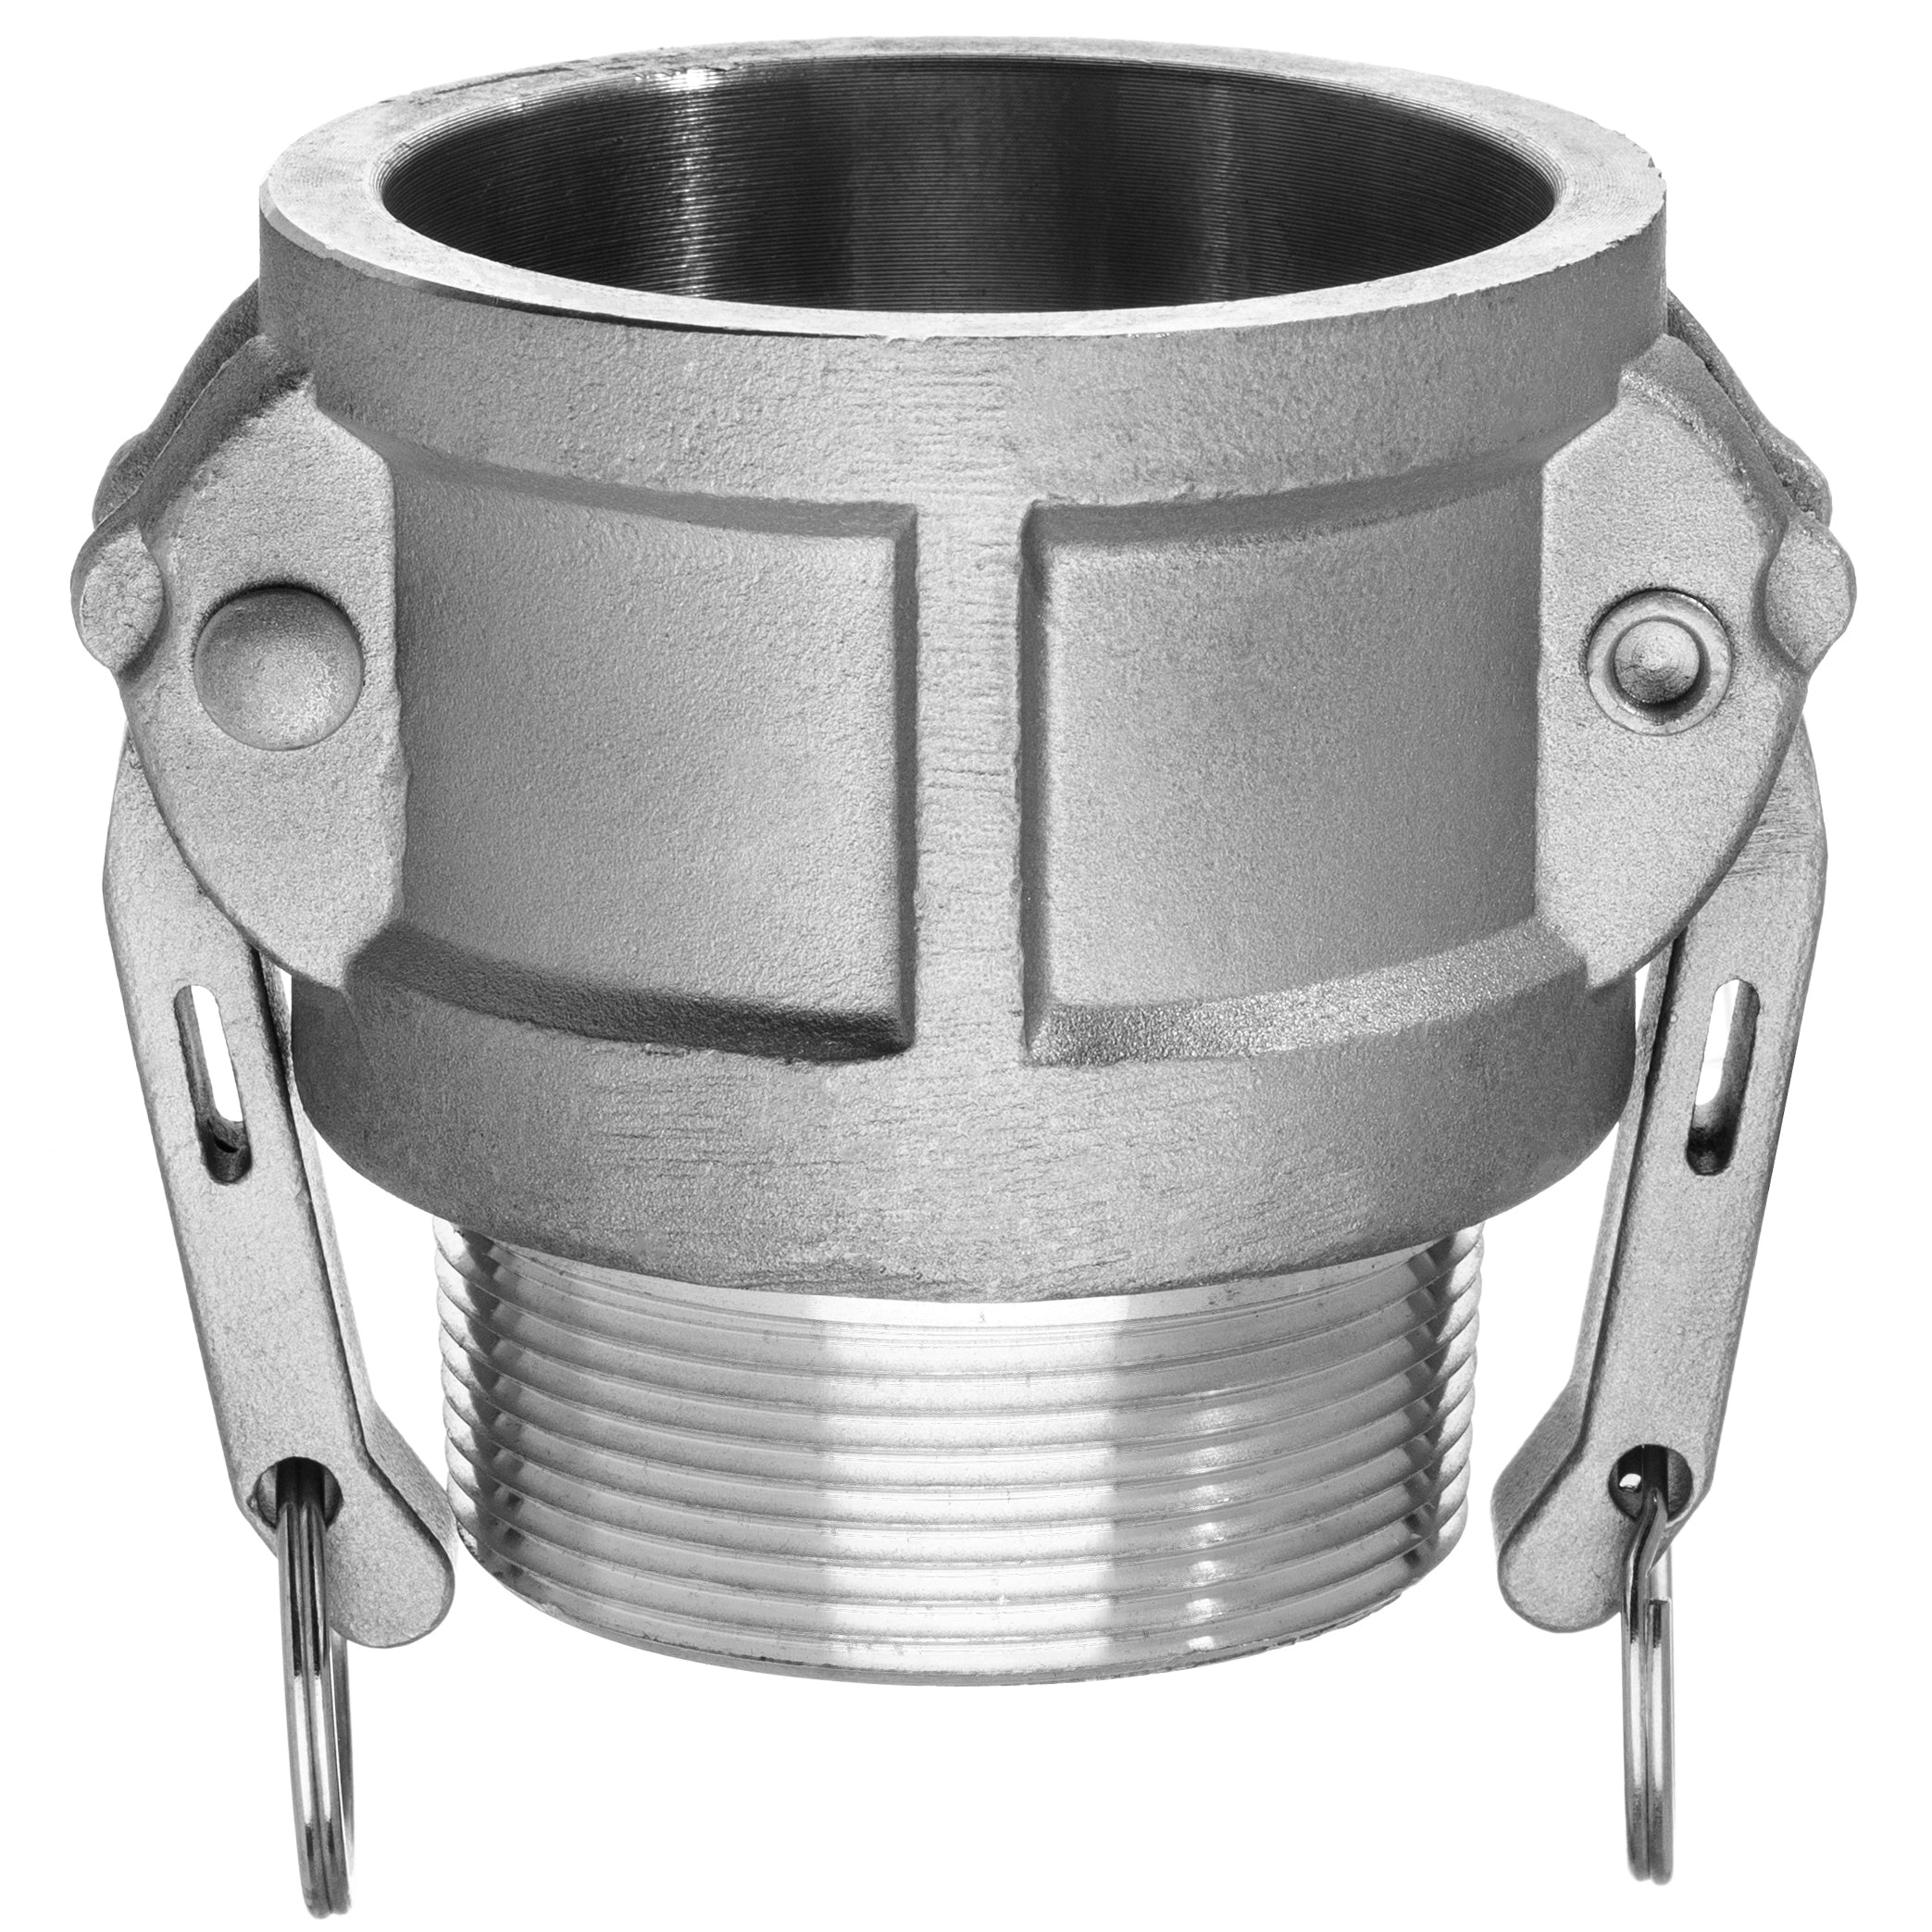 316 Stainless Steel Cam and Groove Hose Couplings